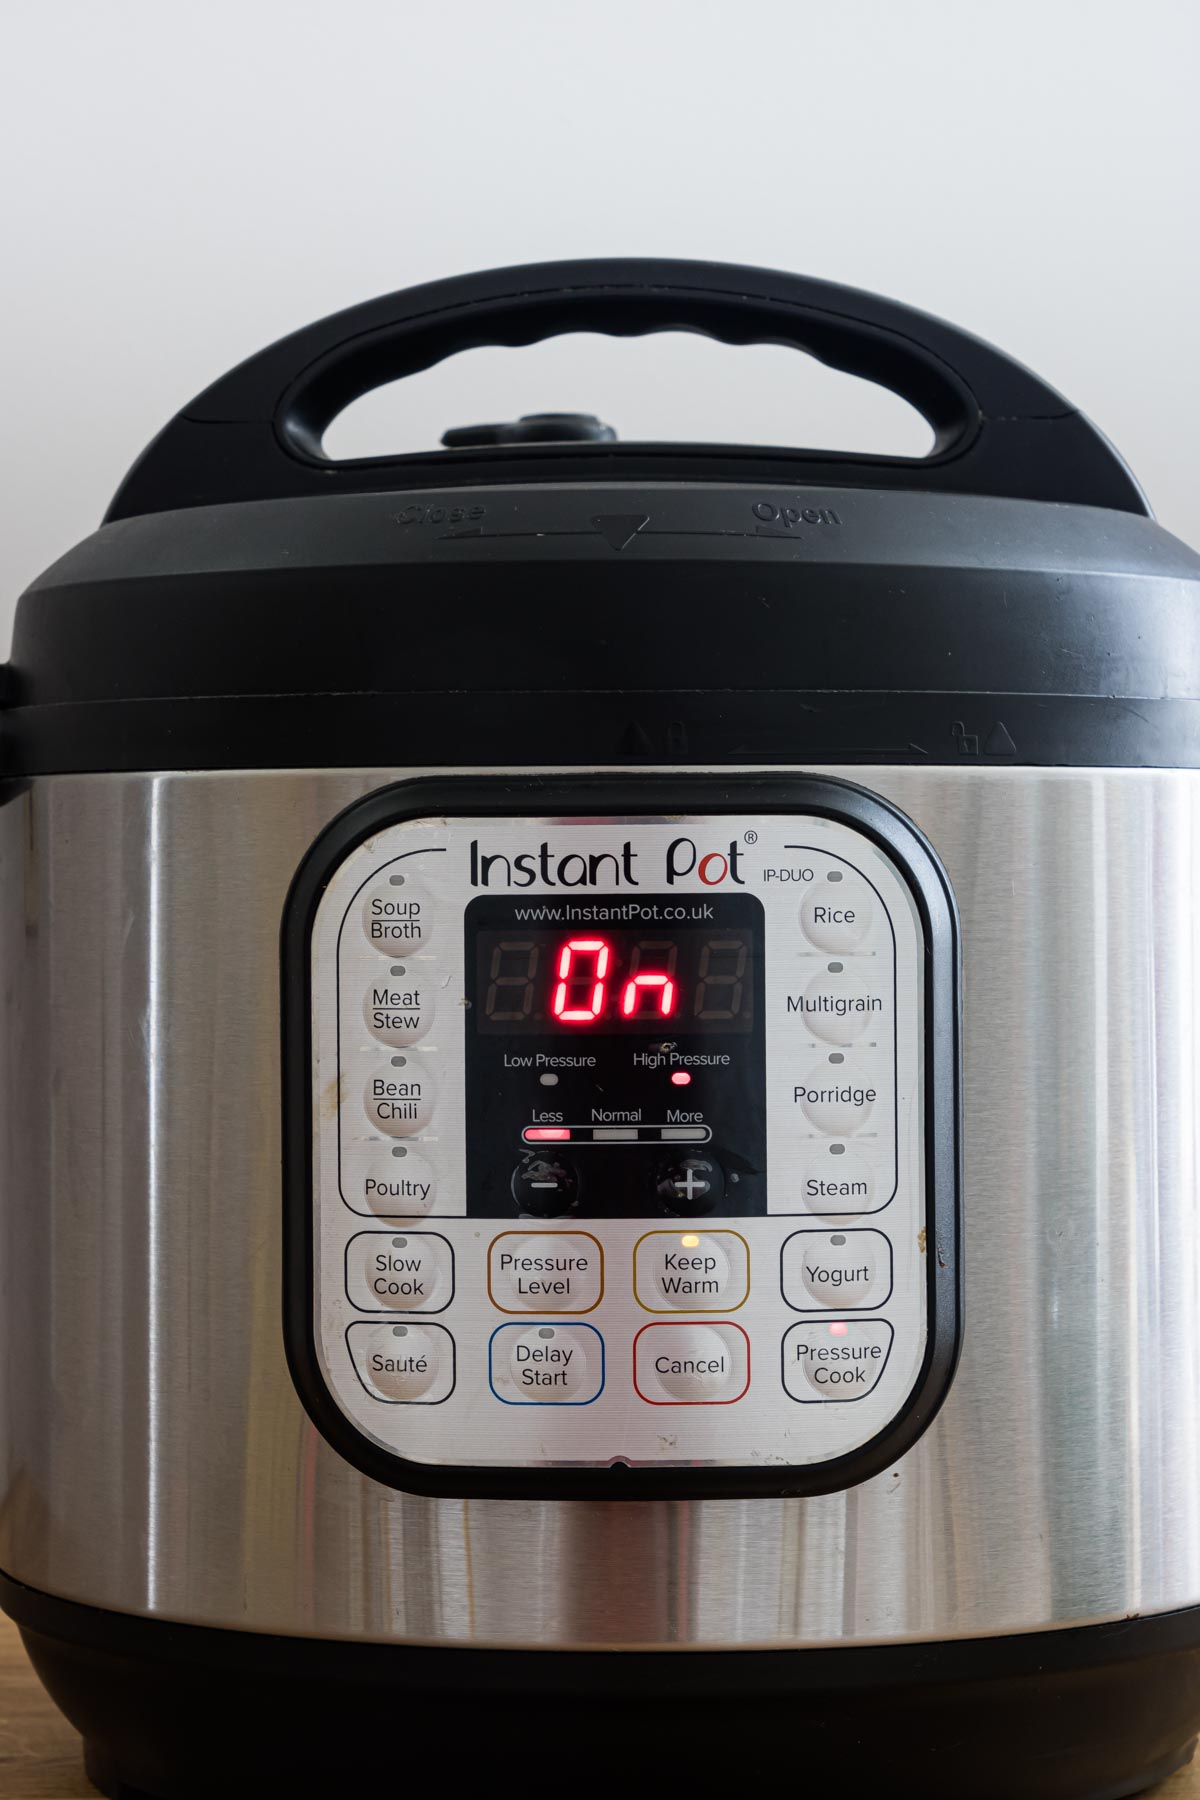 front panel of the instant pot showing that it is powered on and there is no burn message